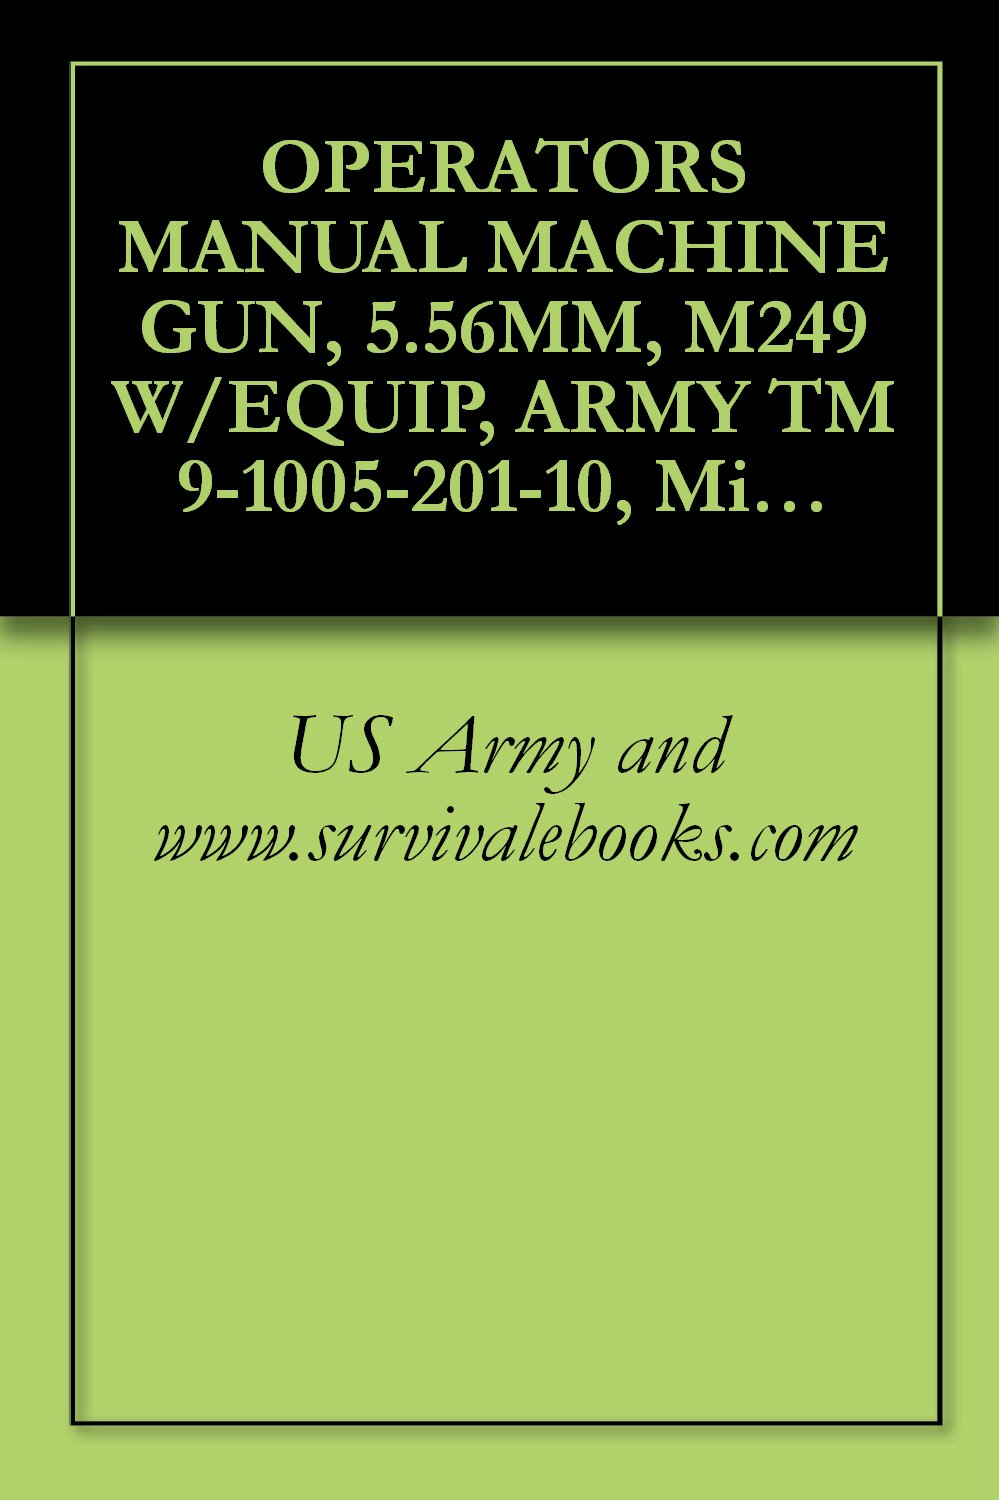 OPERATOR'S MANUAL MACHINE GUN, 5.56MM, M249 W/EQUIP, ARMY TM 9-1005-201-10, Military Manual (Change 2)